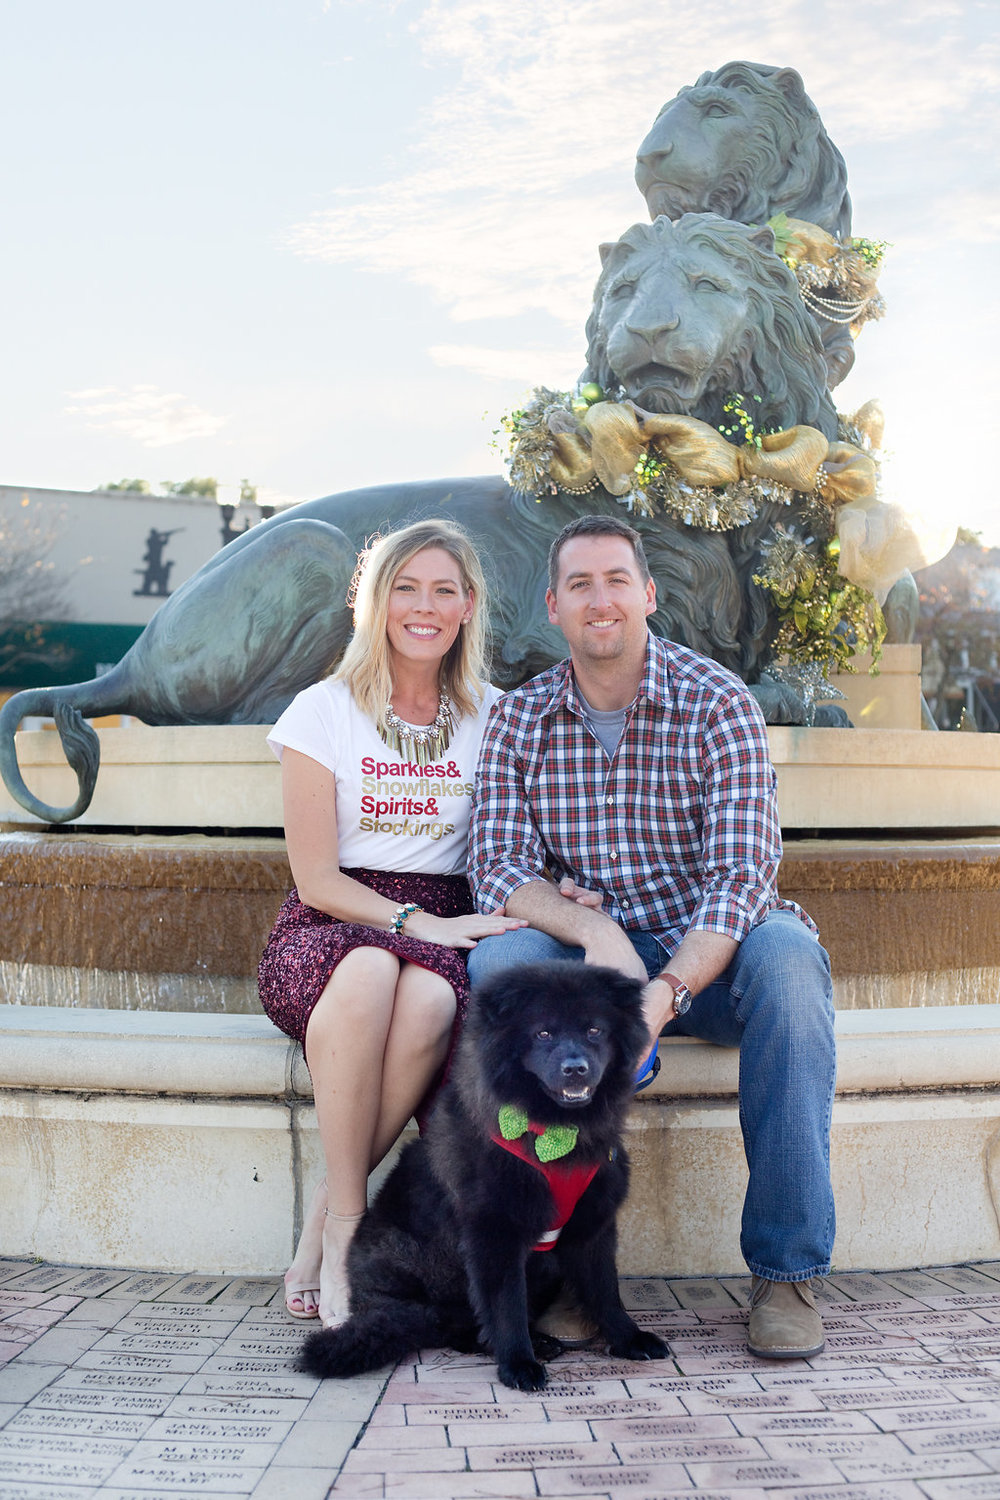 The MacKearney Family | Top US life and style blog, The Borrowed Babes, features Hallmark's Christmas in July